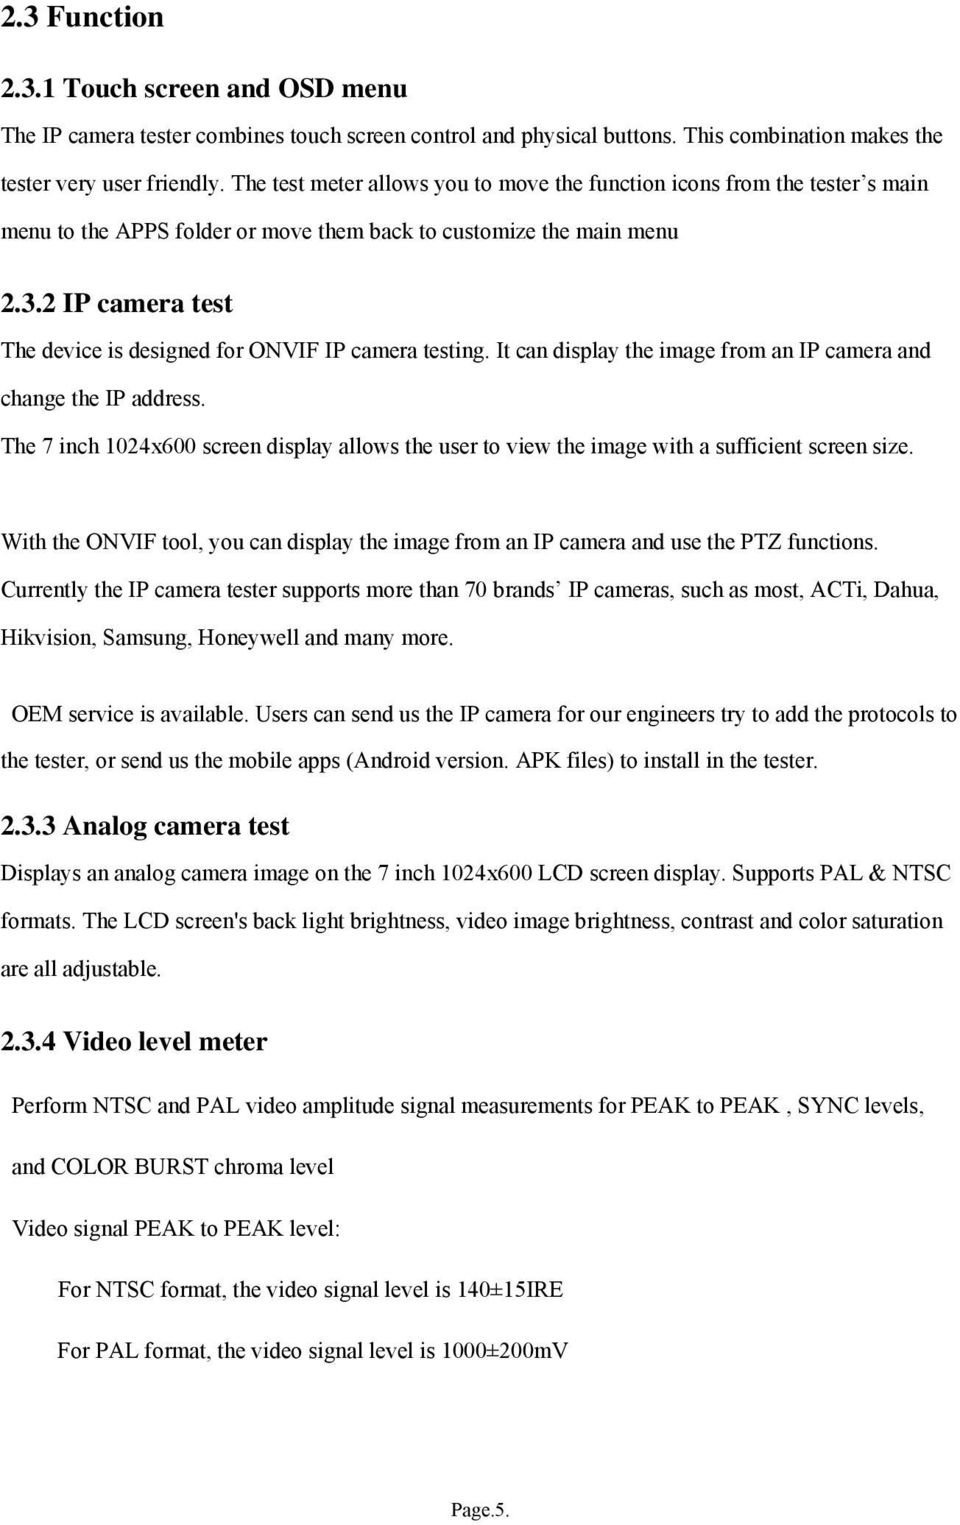 Ip Camera Tester User Manual V0100 Pdf 7 Inch 2 Test The Device Is Designed For Onvif Testing It Can